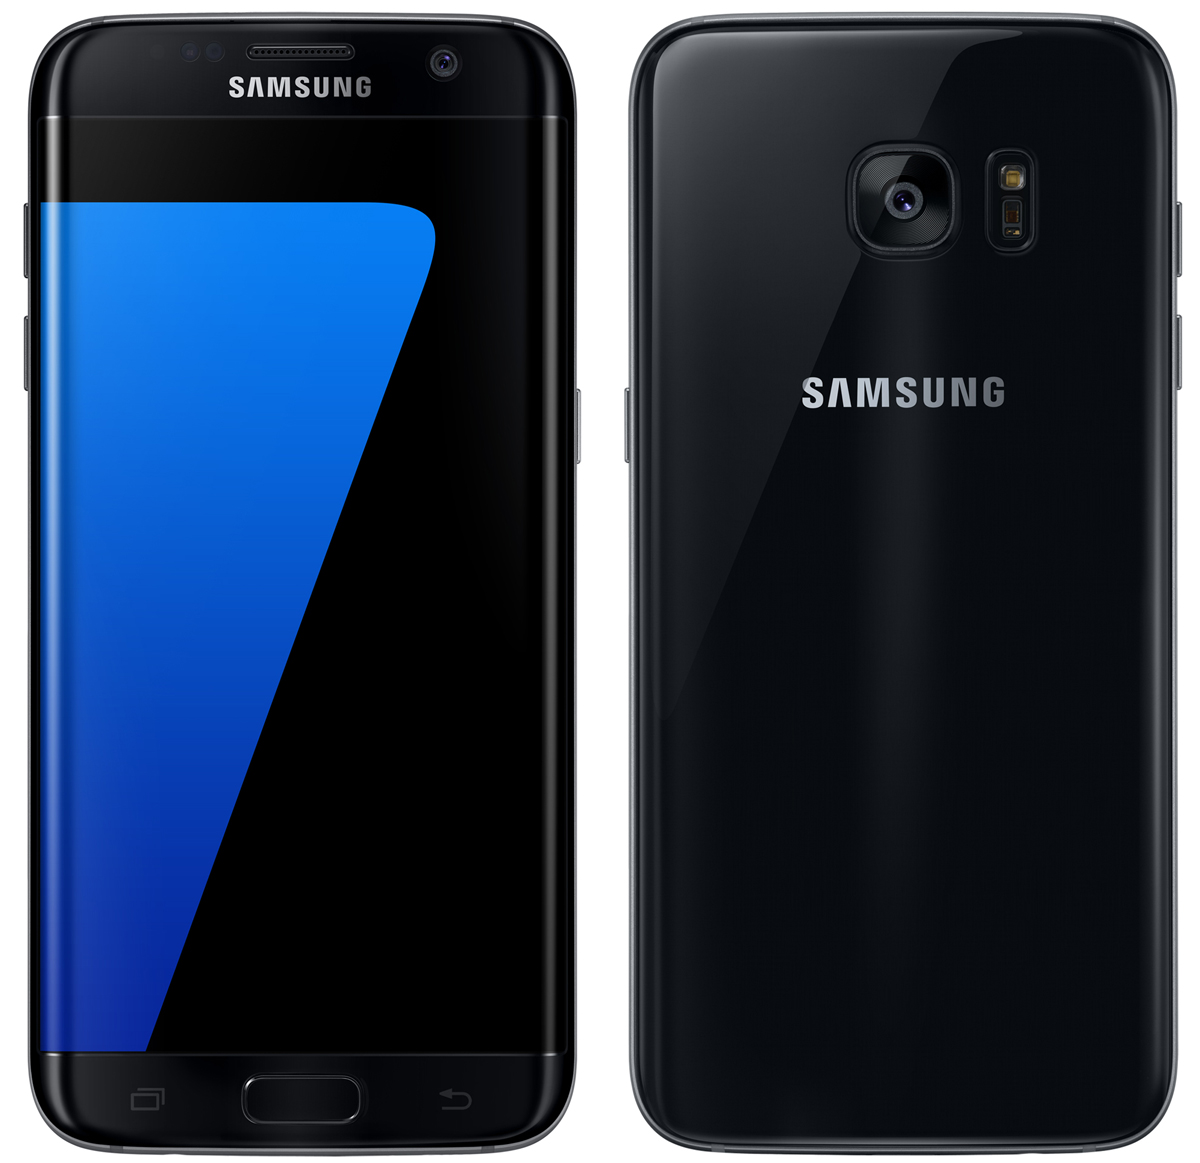 samsung galaxy s7 edge full phone specifications. Black Bedroom Furniture Sets. Home Design Ideas